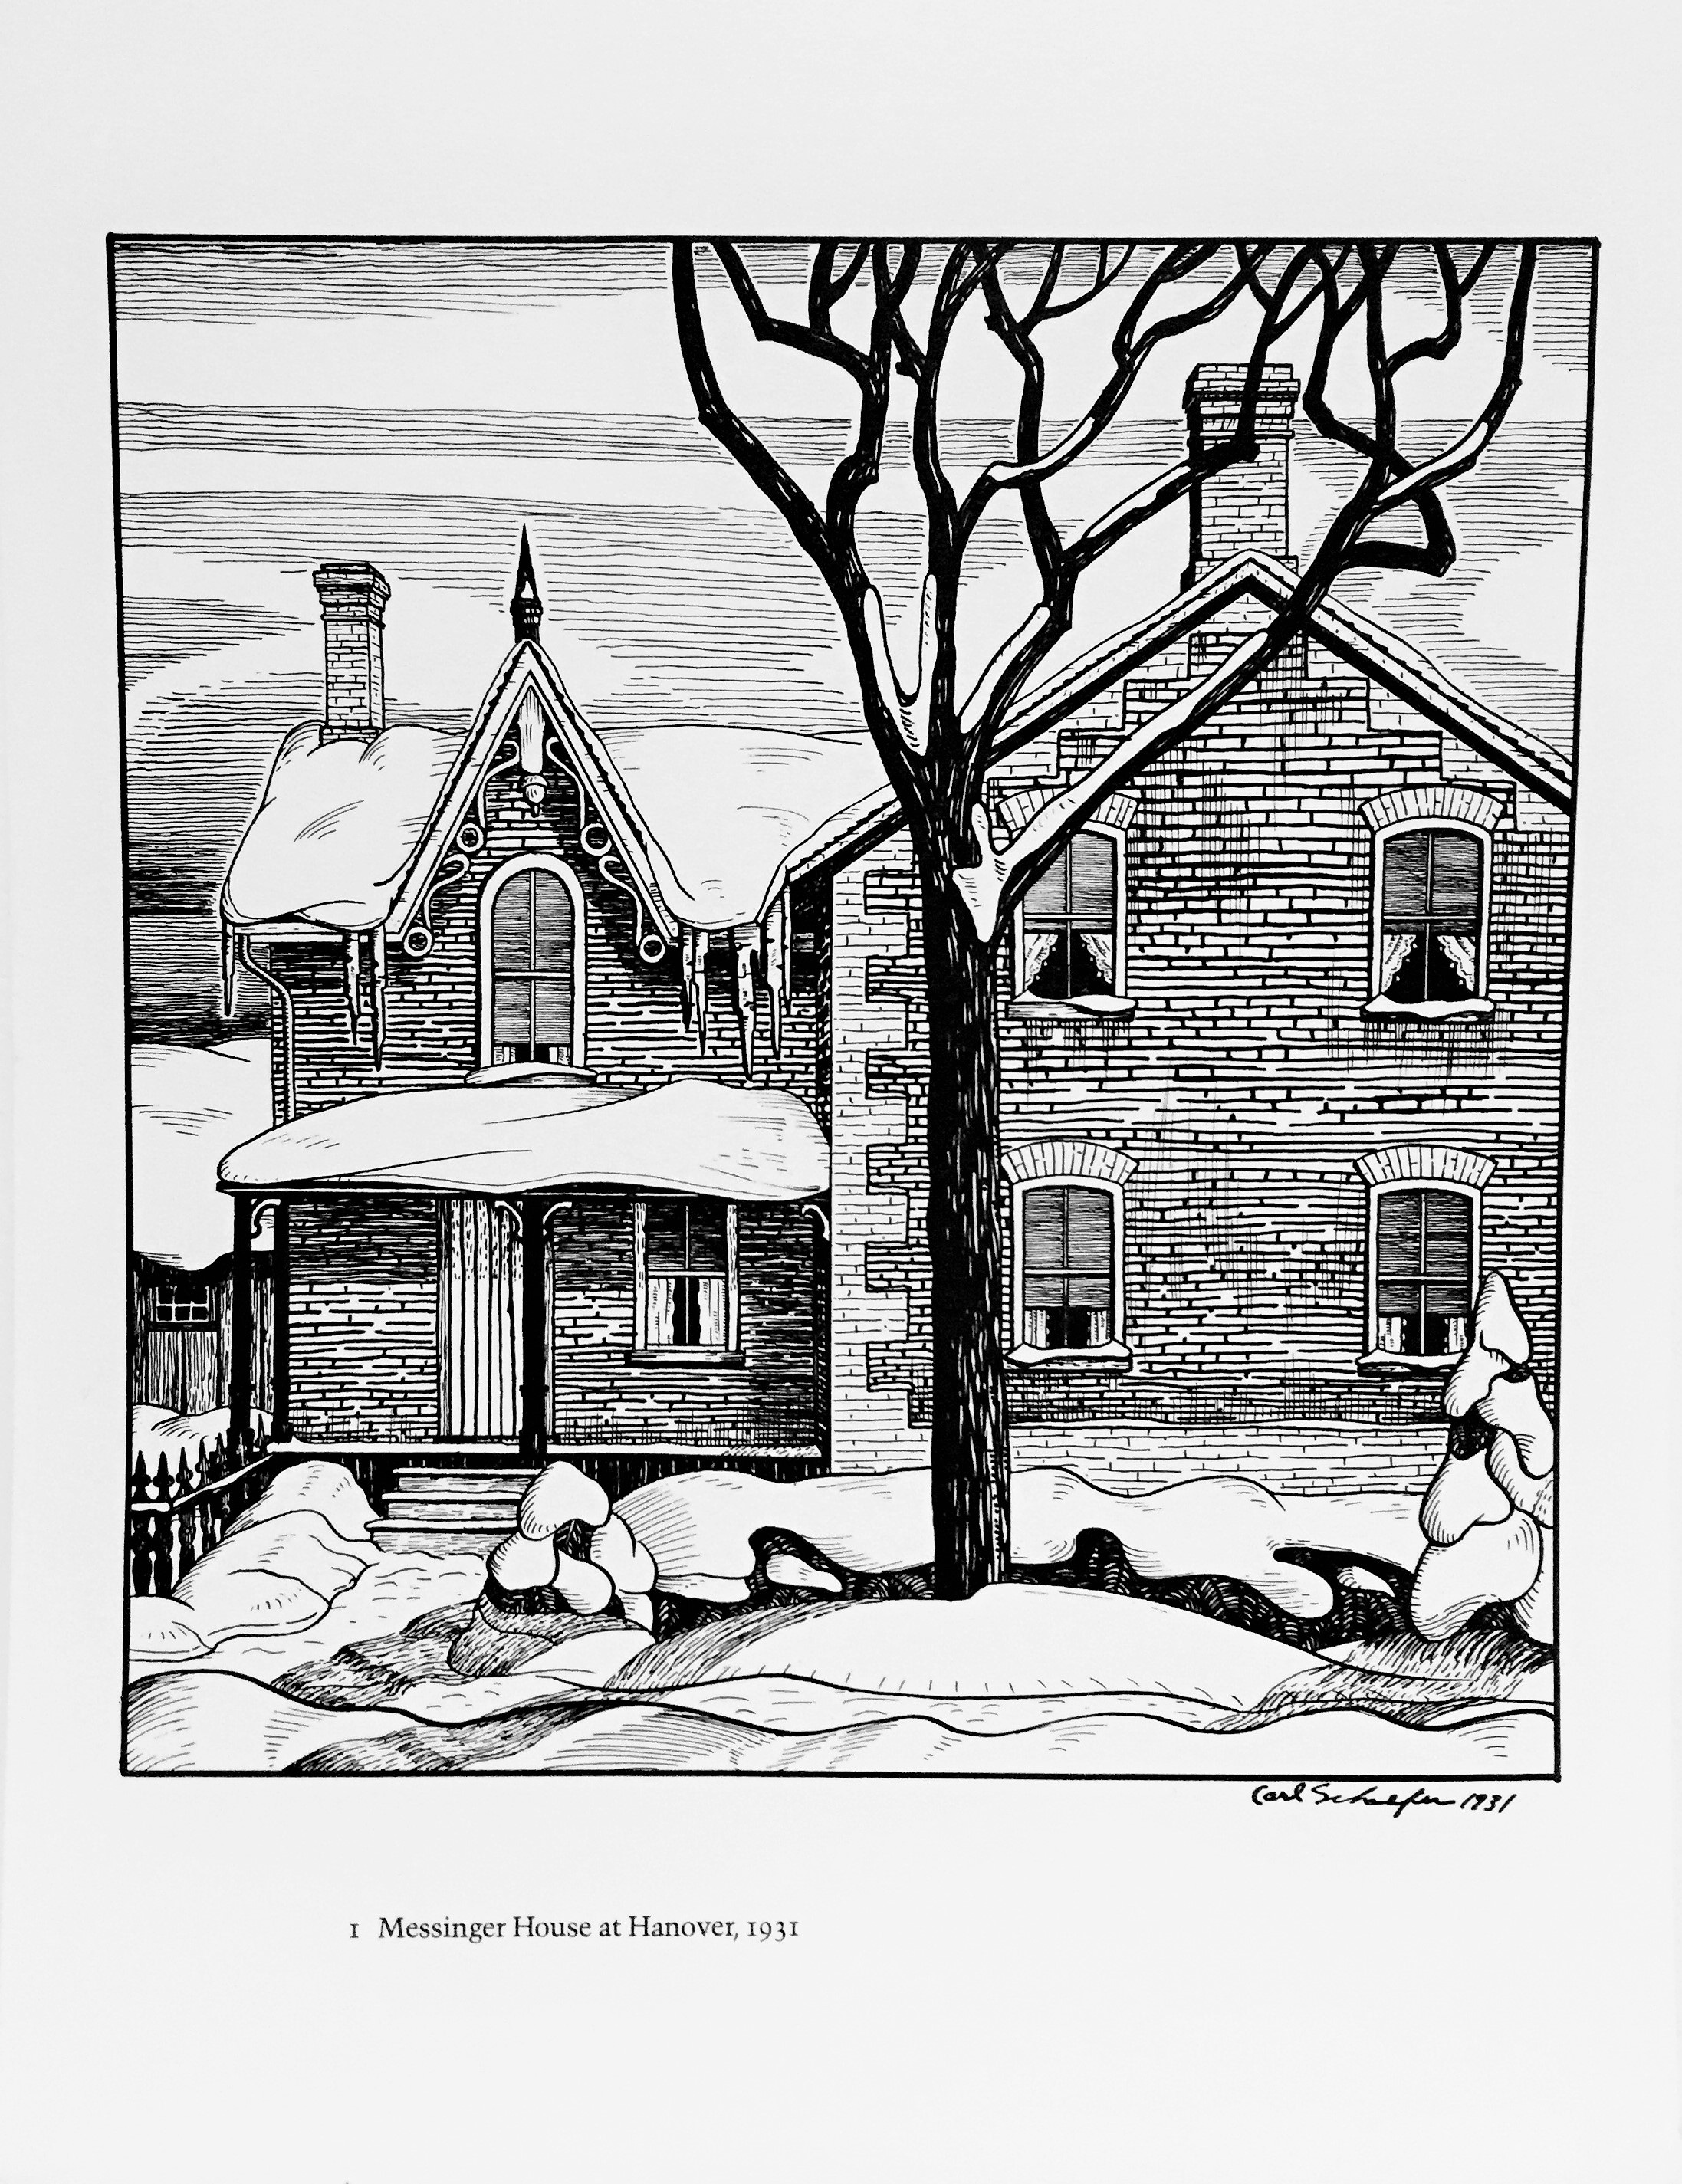 """Carl Fellman Schaefer '12 Farm Drawings 1927-1932' - offset prints on japan paper.""""Messinger House at Hanover"""" (1931); """"Barn and Silo"""" (1929); """"Farm House and Garden near Hanover"""" (1929); """"House at Barrie"""" (1931); """"Ontario Farm House and Garden, Hanover"""" (1928); """"Ontario Farm"""" (1929); """"Sunday Morning, Hanover"""" (1929); """"Farm House near Bathurst Street"""" (1932); """"Houses at Hanover"""" (1929); """"Farm House, Hanover"""" (1927); """"The Garden, Hanover"""" (1927); """"Farm Land, Hanover"""" (1929);Each signed and dated within the plate; signed and numbered by artist 109/300 on title page; Published by Penumbra Press, Moonbeam, 198013 x 10 ins each sheet.Very good condition. Top spine of envelope torn and very minor handling mark on title page.$225 for the set"""